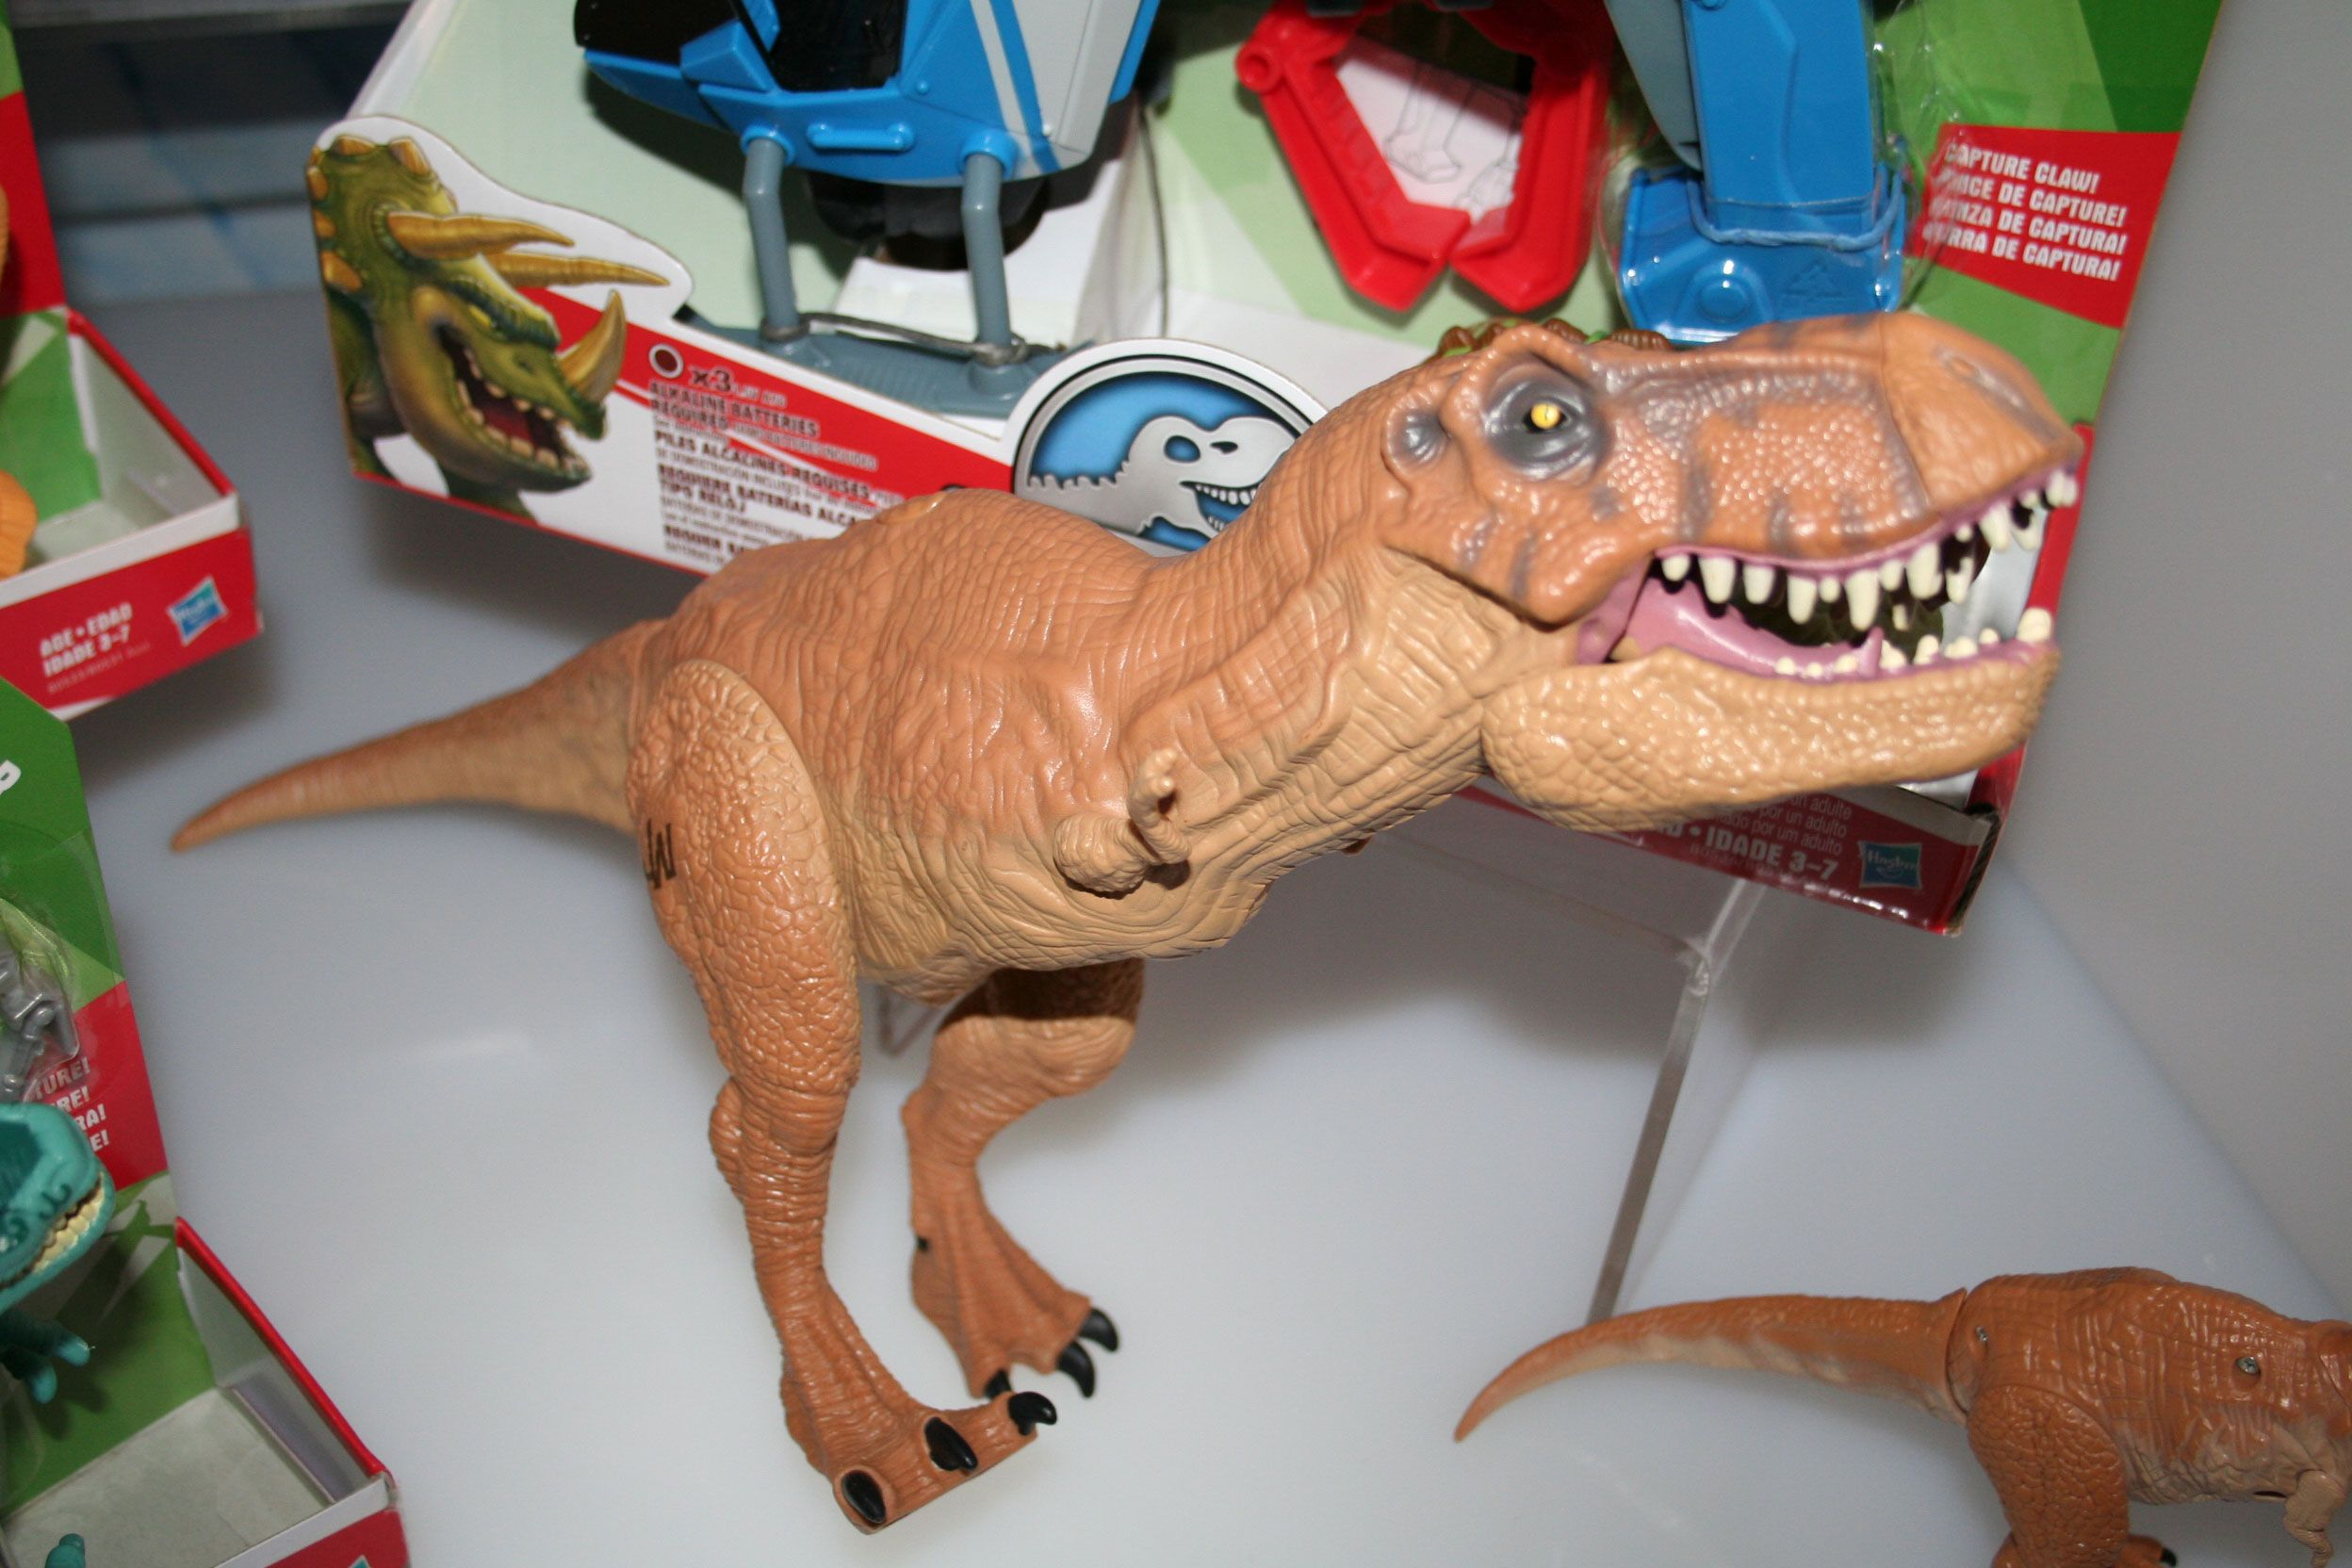 Jurassic World Merchandise Images from Universal at Toy Fair